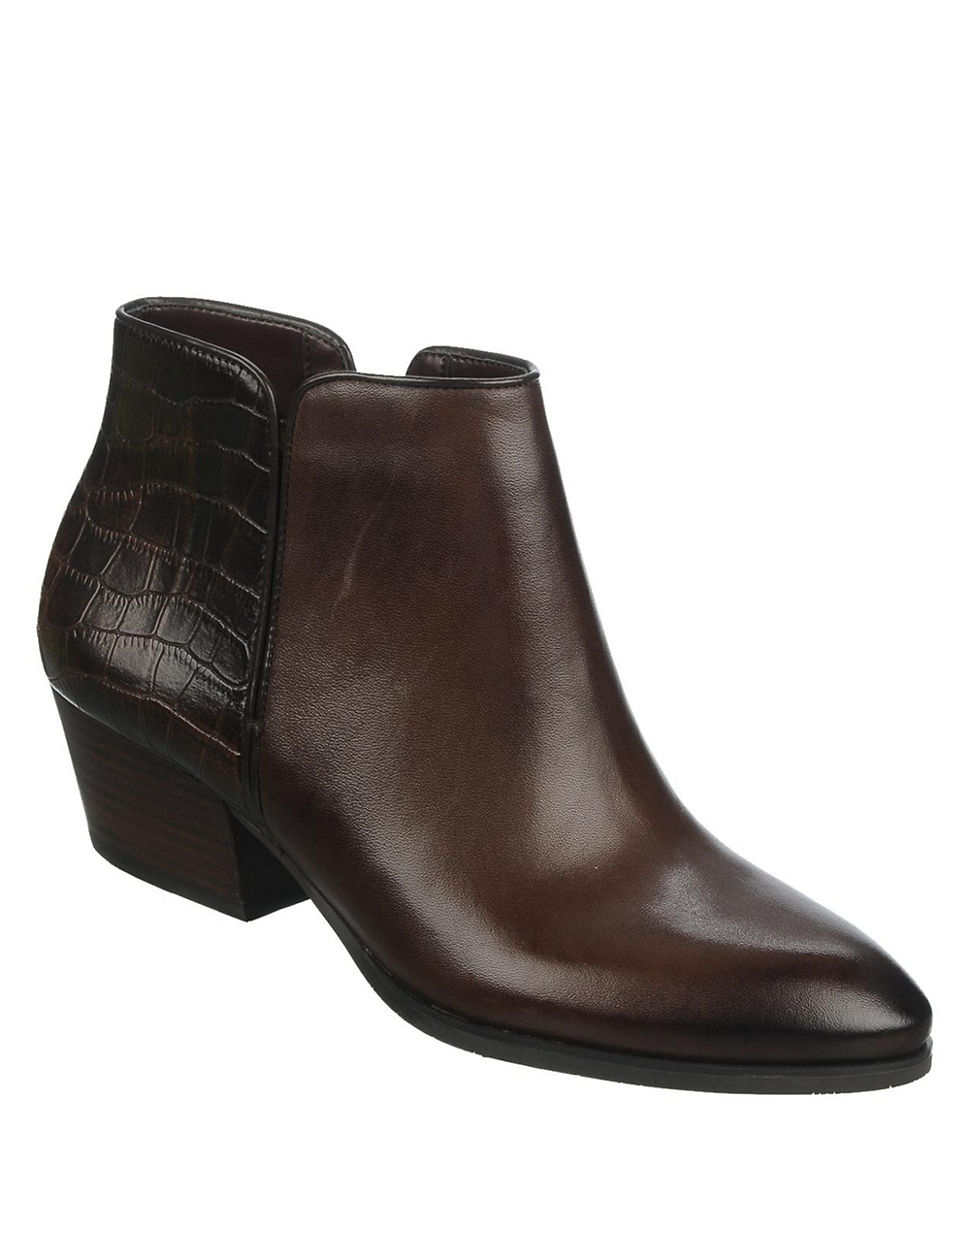 franco sarto quasar leather boots in brown lyst